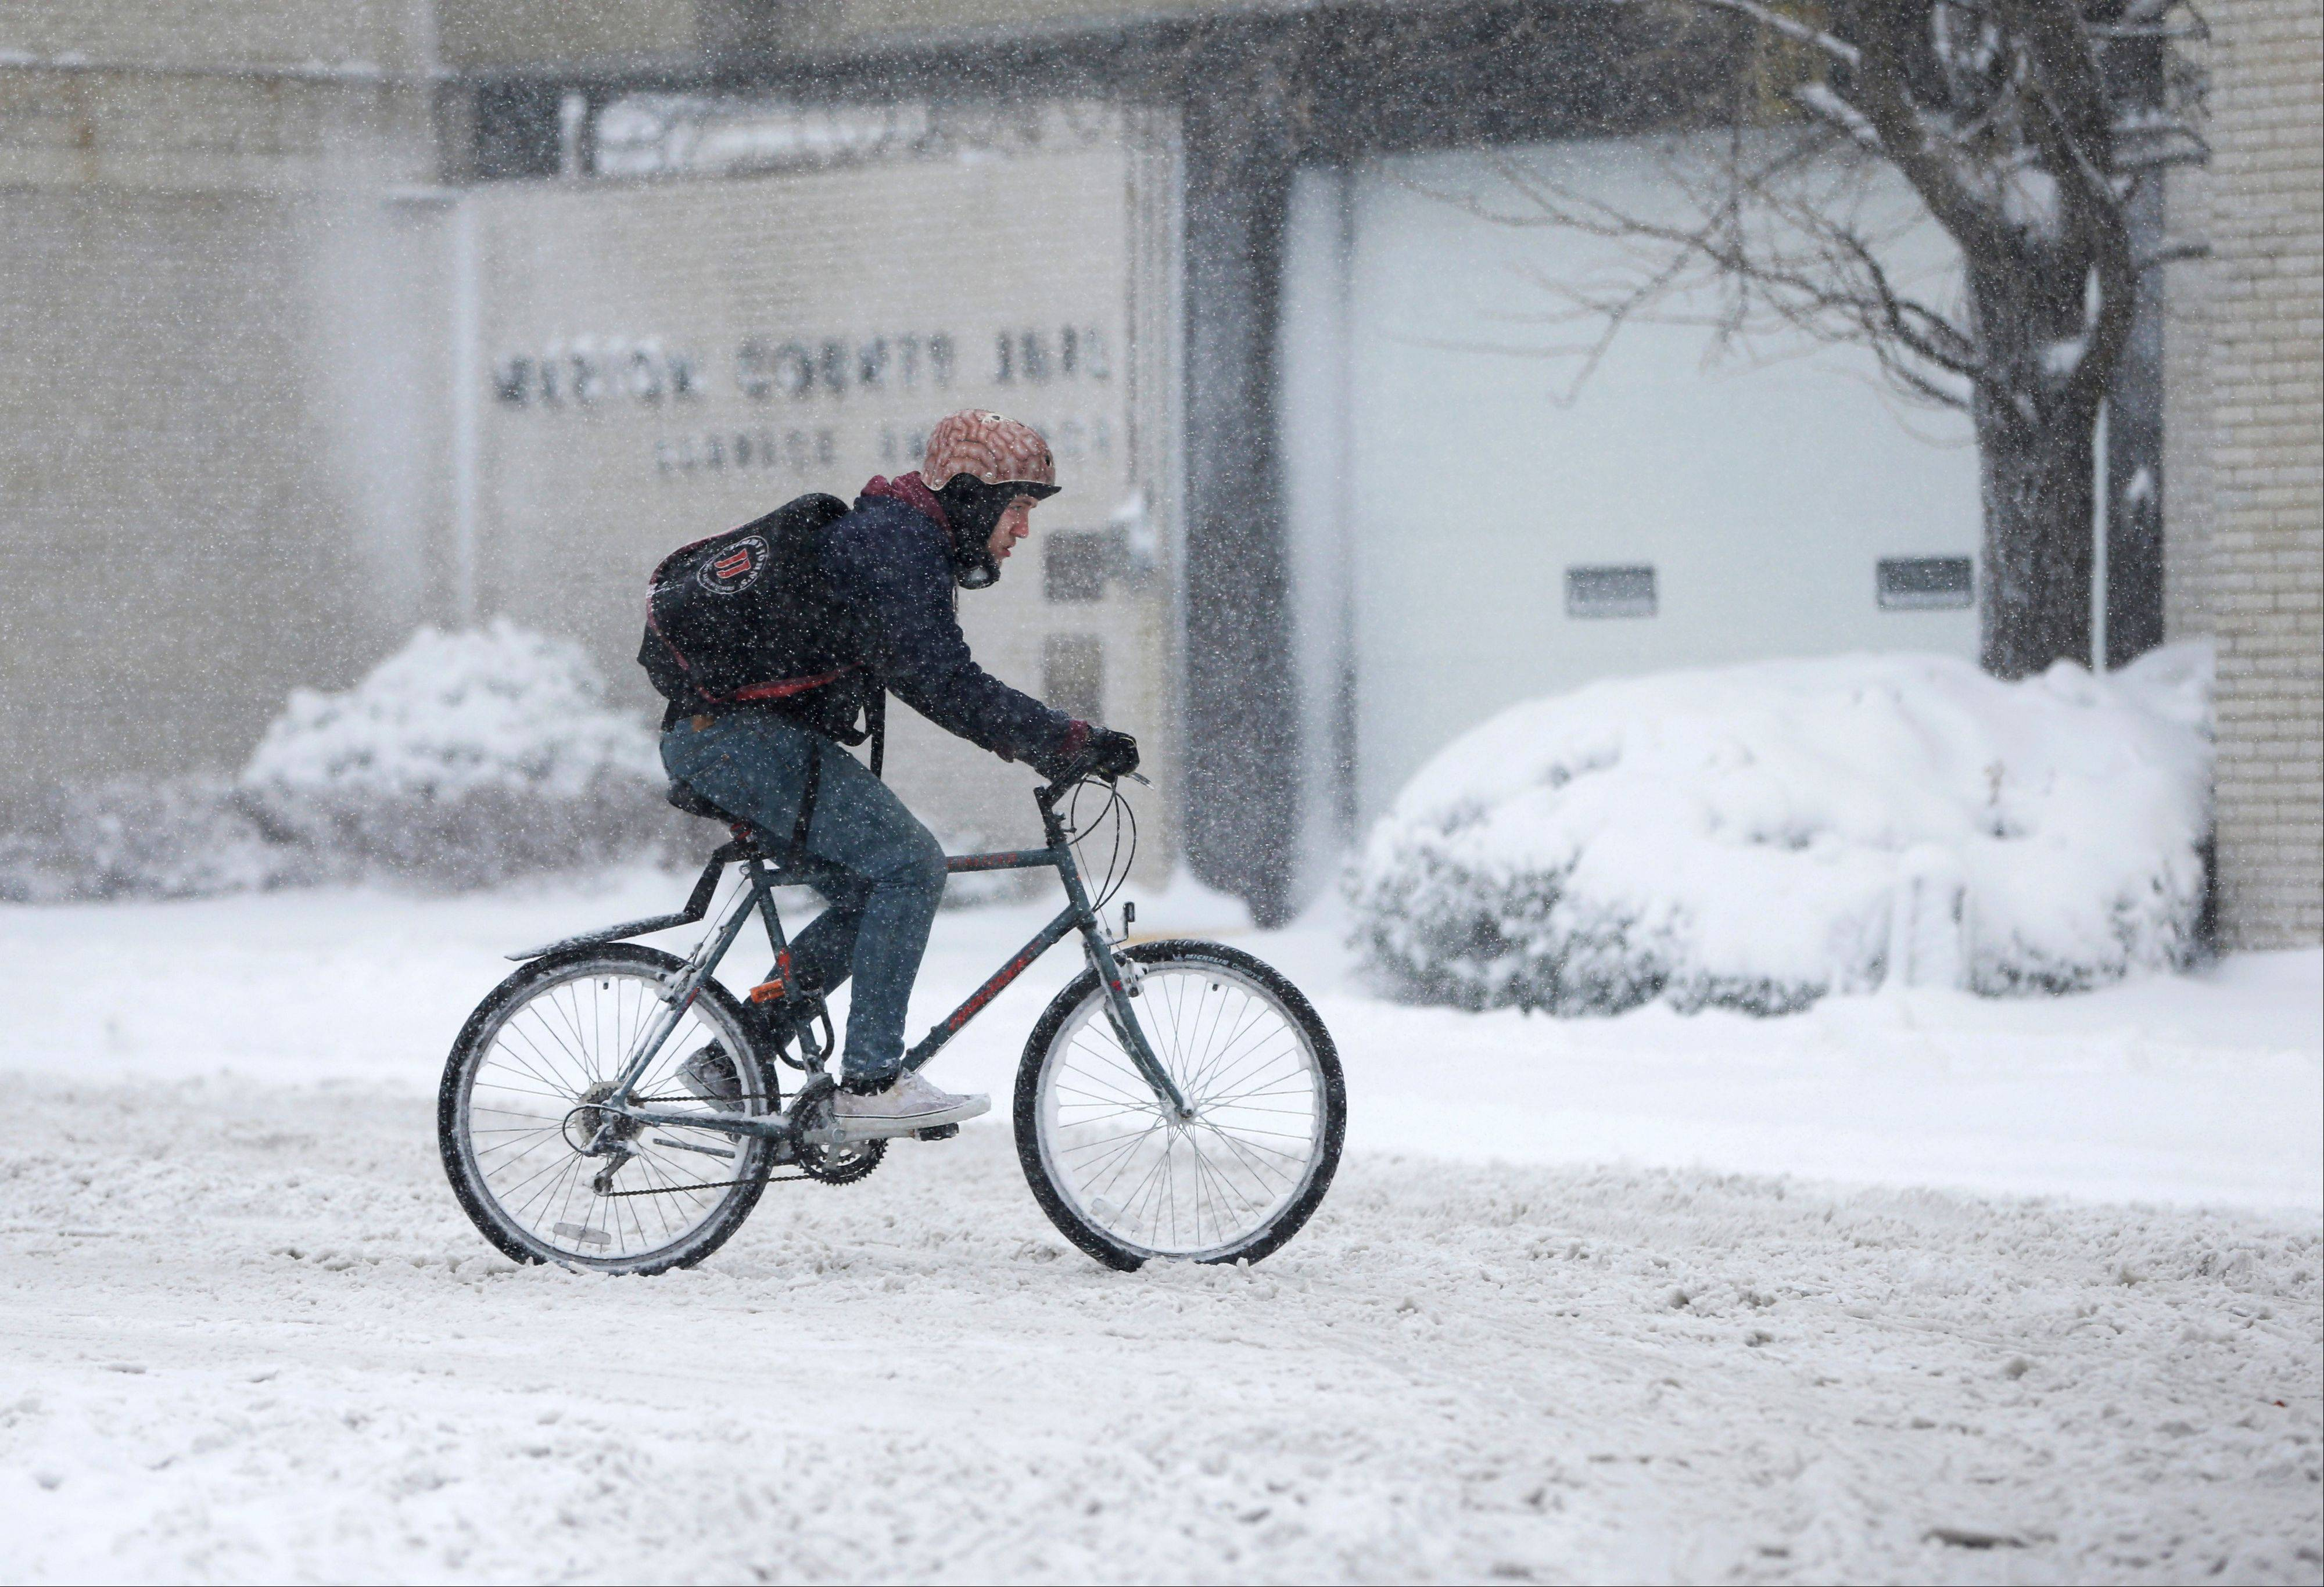 A man rides his bicycle through the streets as he makes a delivery Wednesday in Indianapolis. The blizzard warning issued the day before by National Weather Service came to fruition in the region as winds picked up and snow began falling in earnest. The Pacers postponed their game with the Chicago Bulls on Wednesday night.